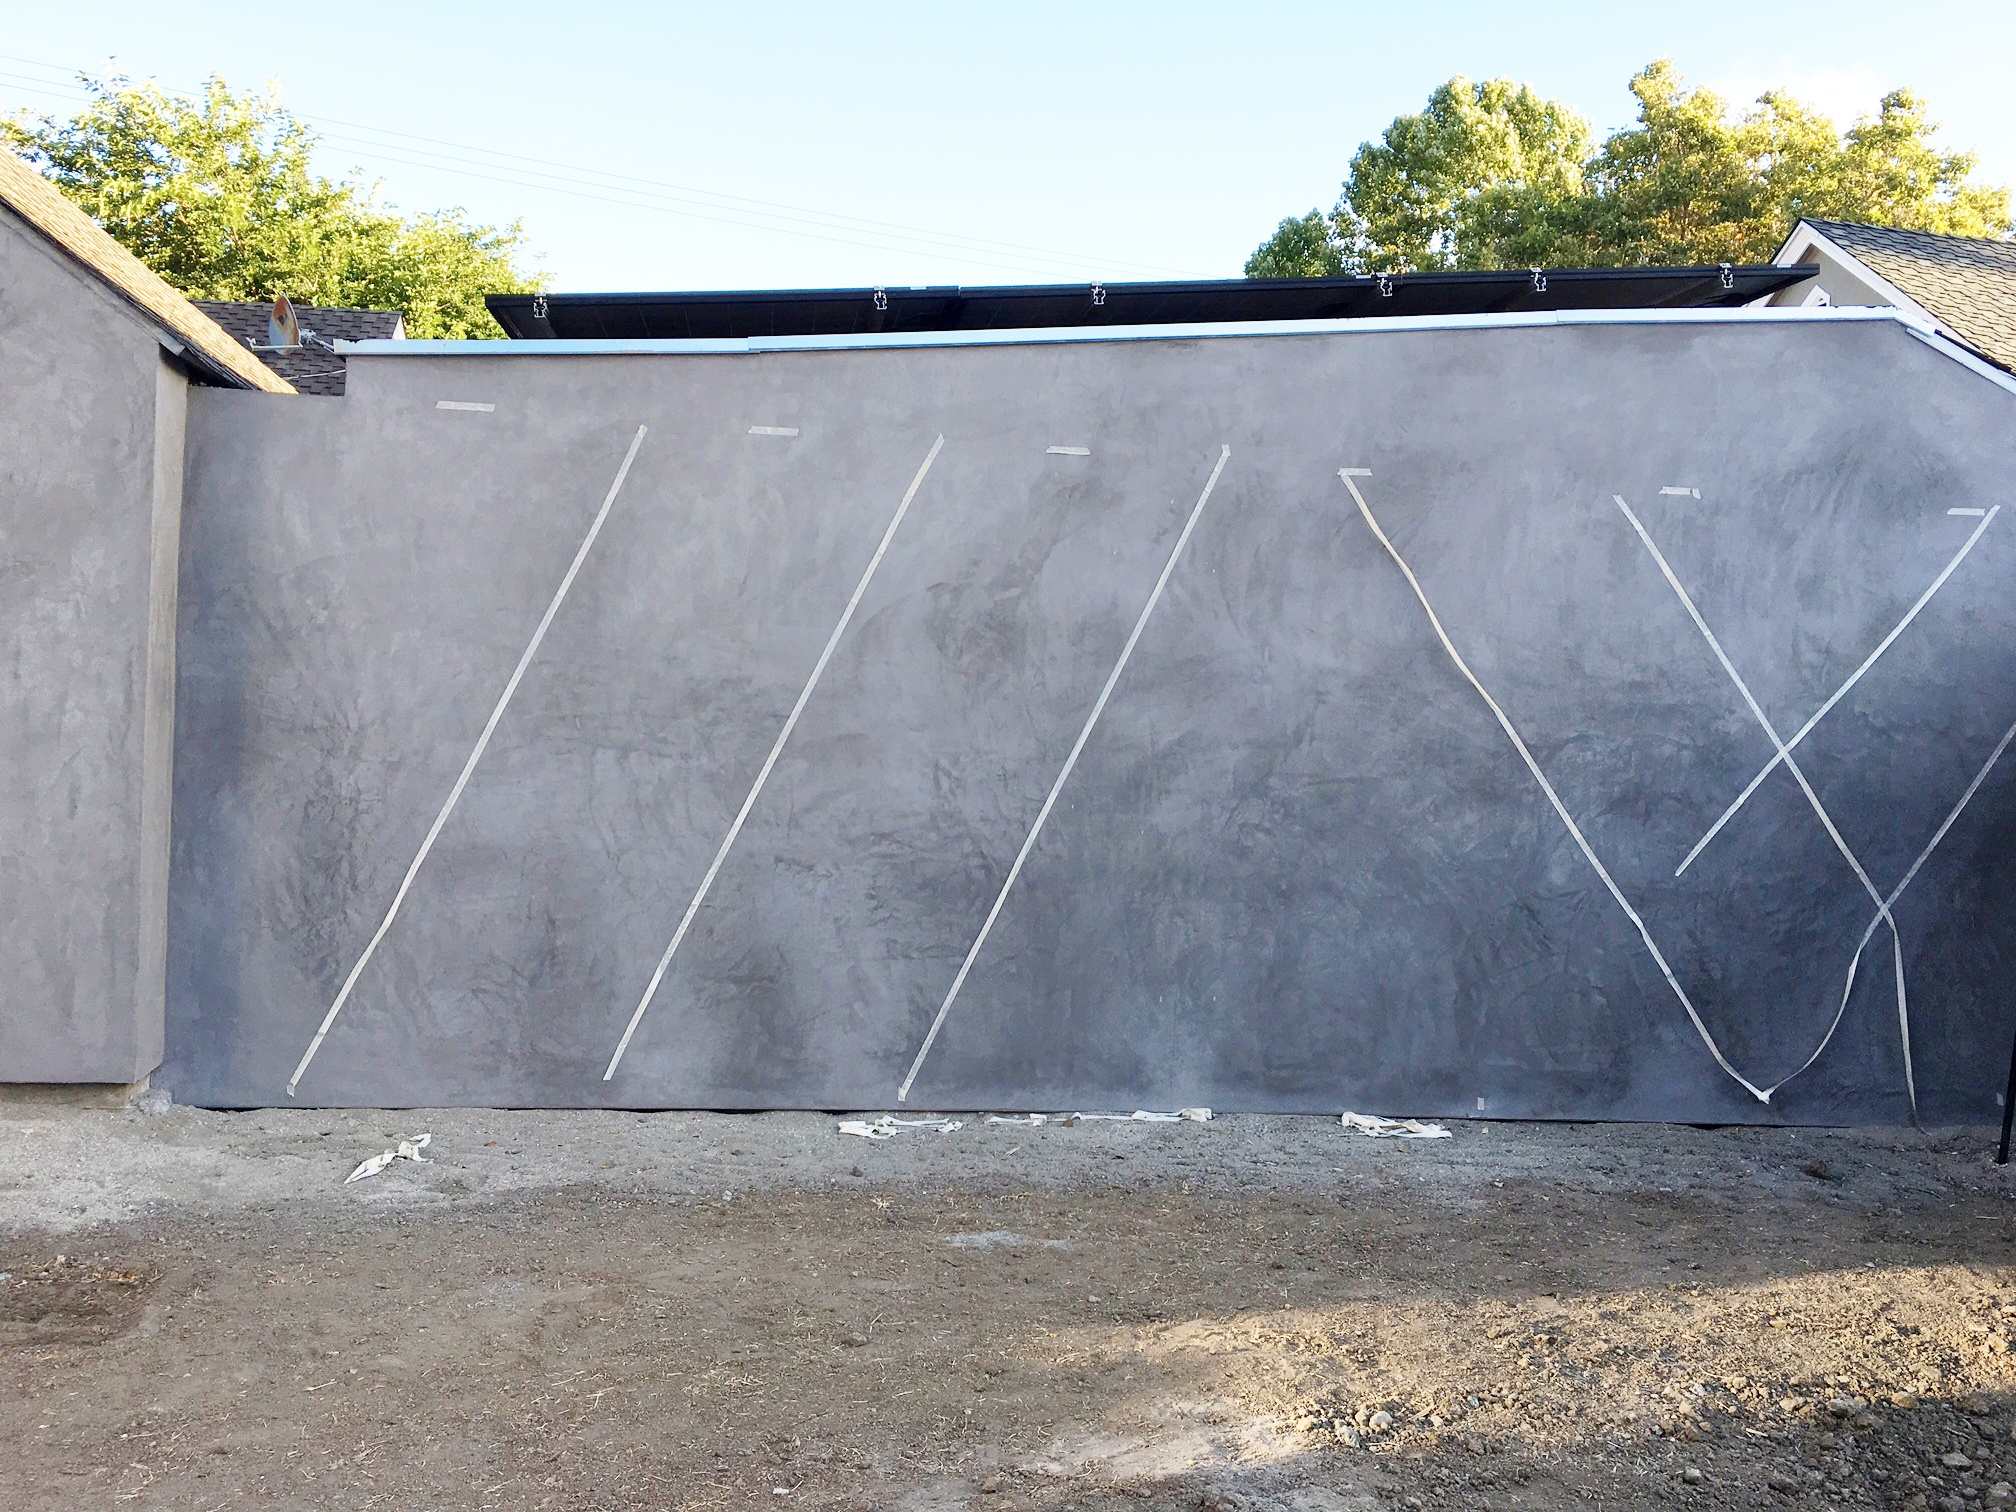 Here's what its looking like now. We covered both walls with stucco so it feels cleaner and more consistent.   Next, we are going to espalier vines up the wall in a criss-cross fashion.  Here's my lame tape job looking at different angles.